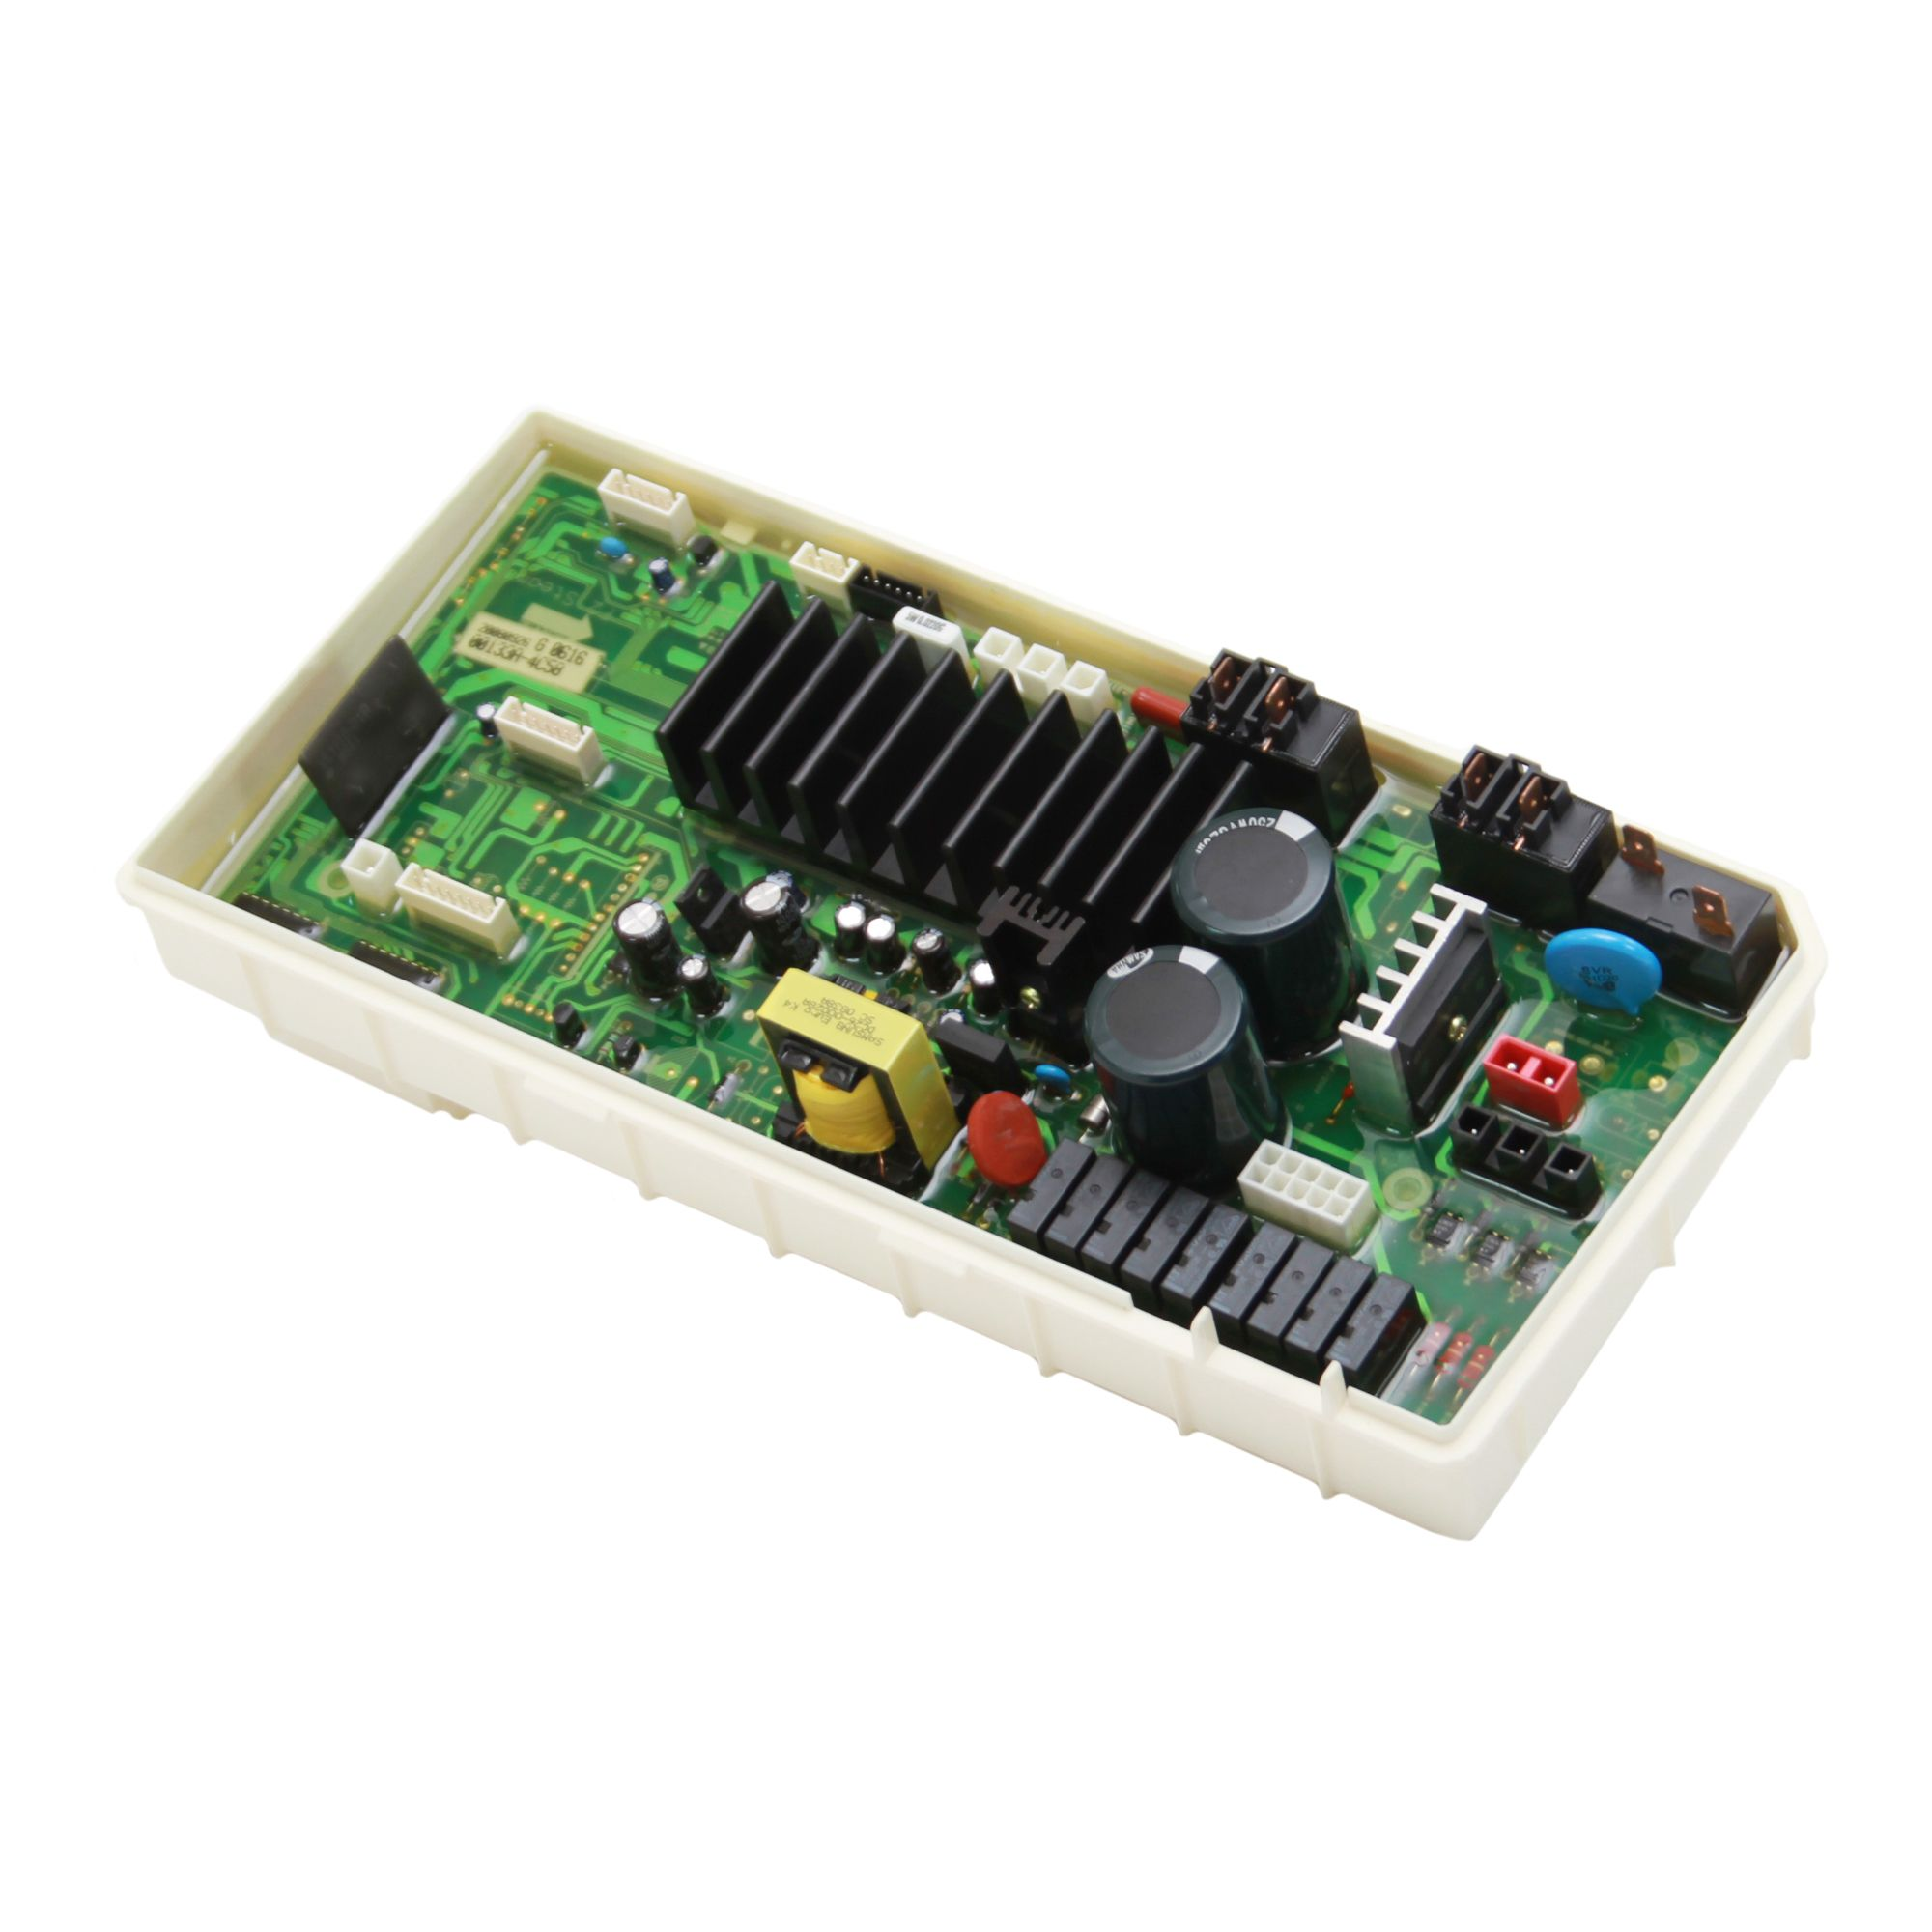 dc92 00133v electronic control board ma pi ce. Black Bedroom Furniture Sets. Home Design Ideas